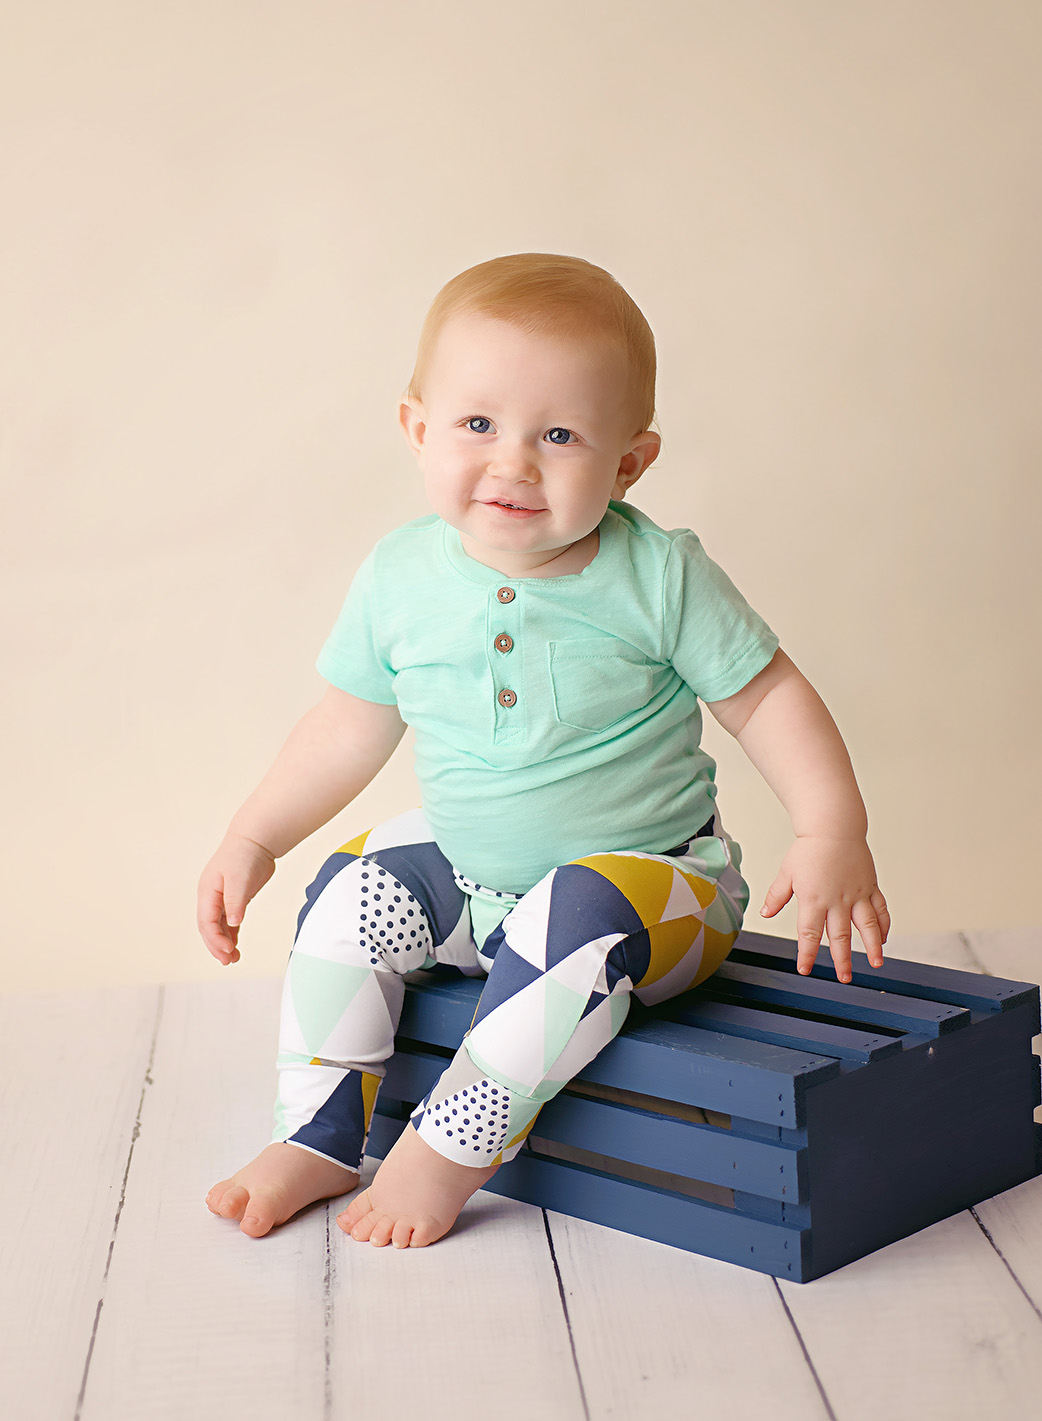 baby boy in mint shirt sitting on blue crate